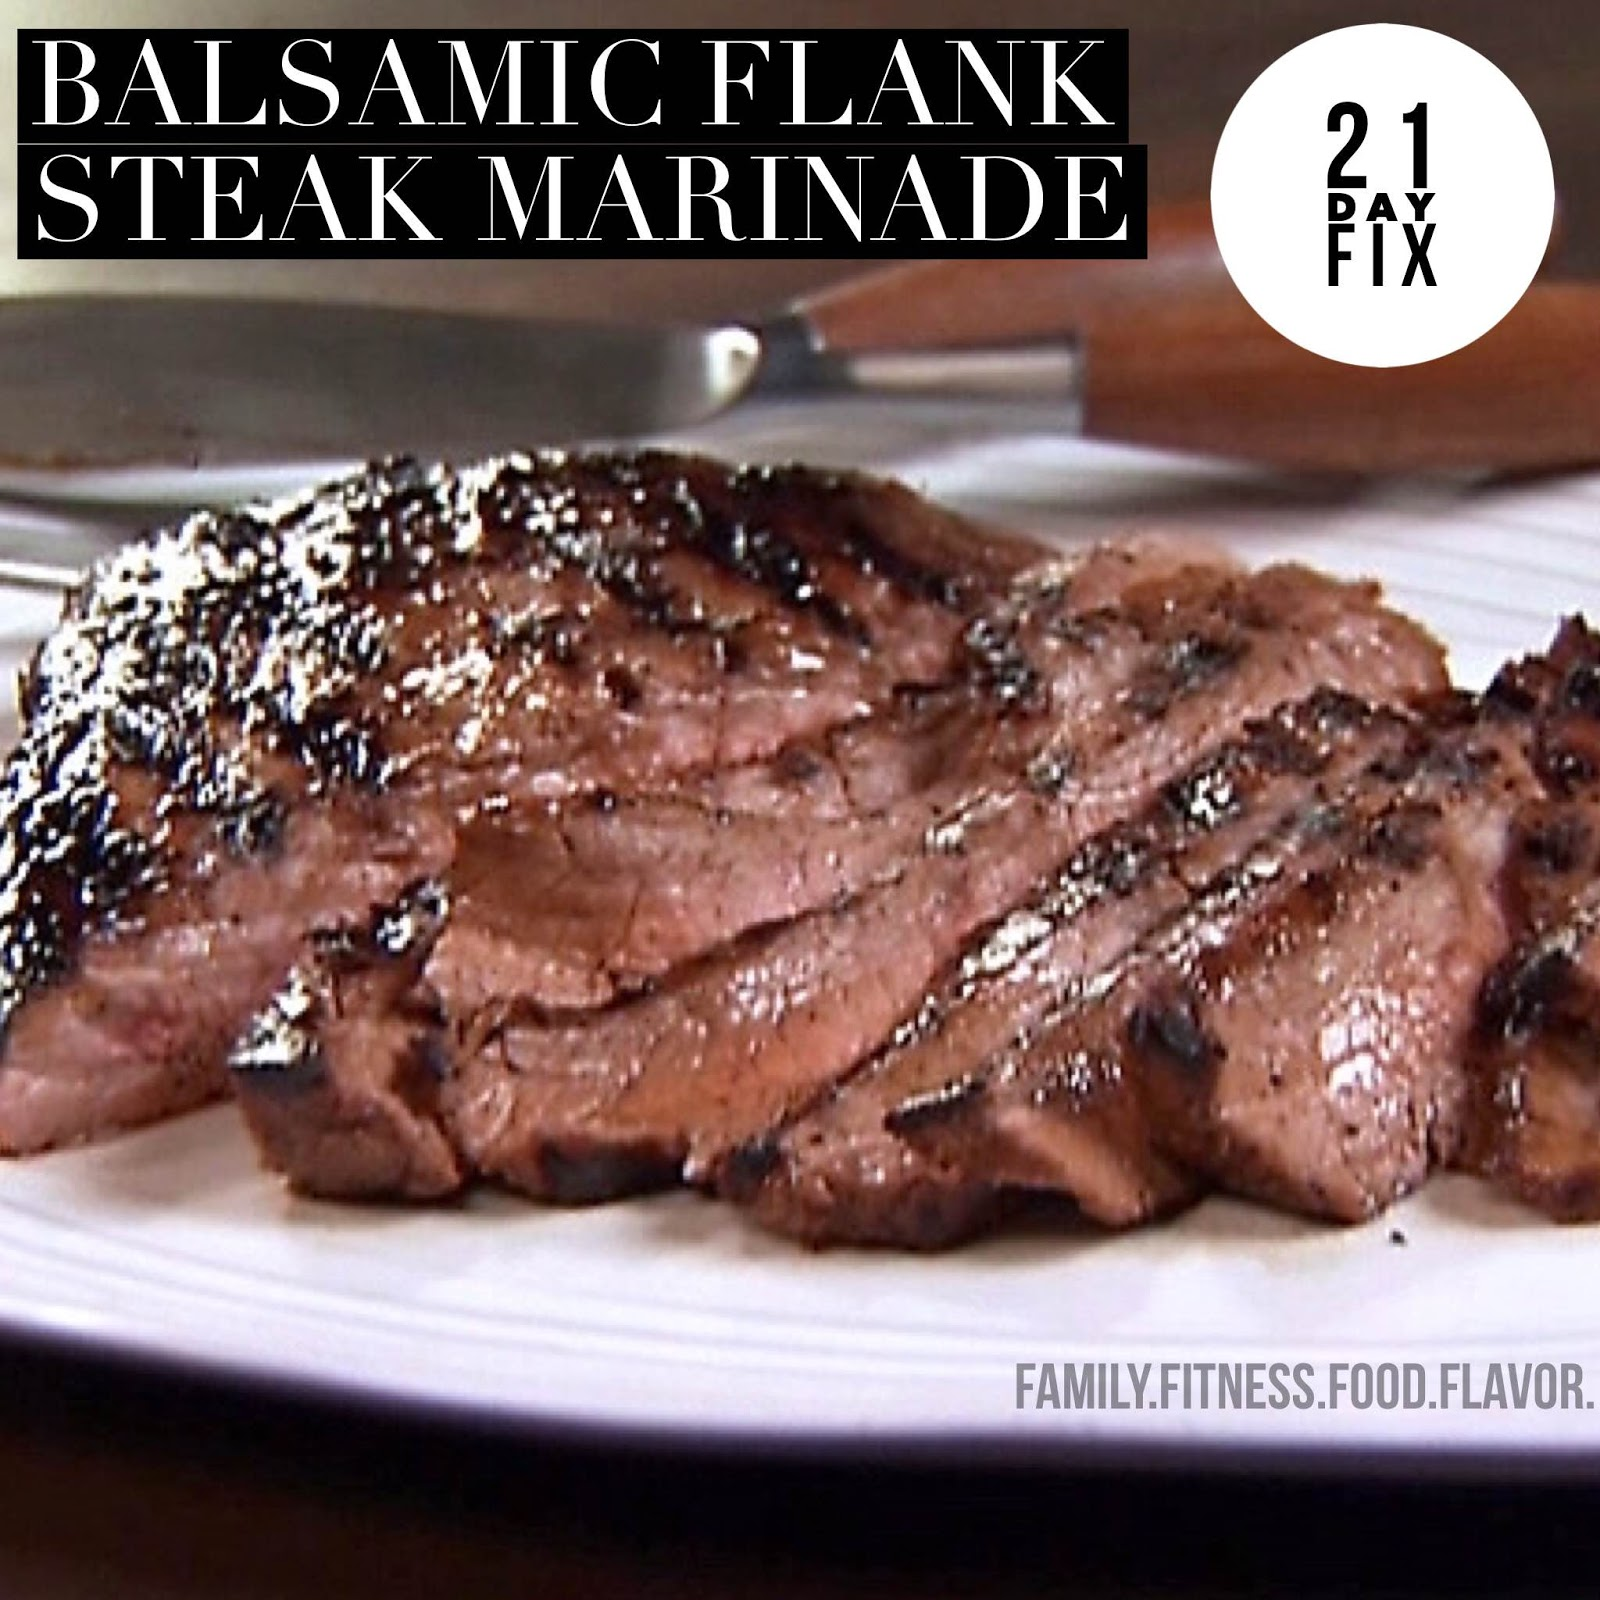 ... Food. Flavor. : Balsamic Flank Steak Marinade - 21 Day Fix Approved